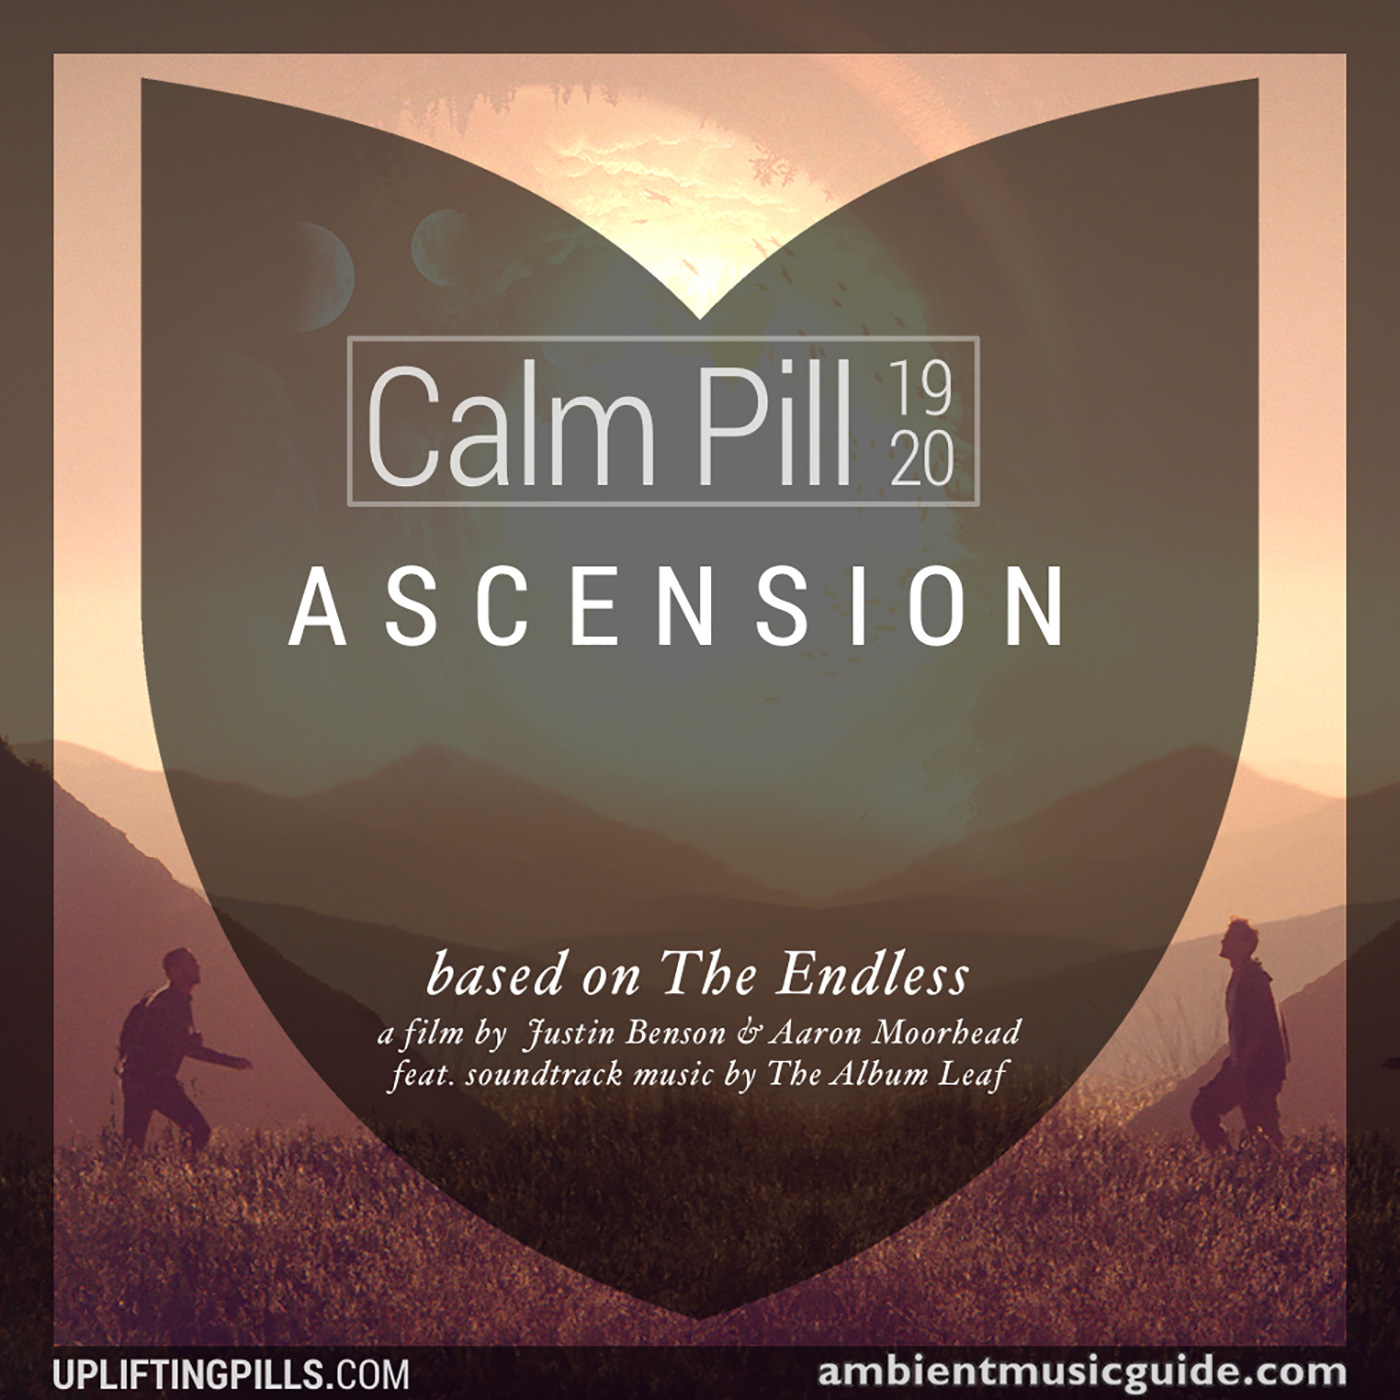 Guest mix: Calm Pill 19+20 - Ascension mixed by Uplifting Pills